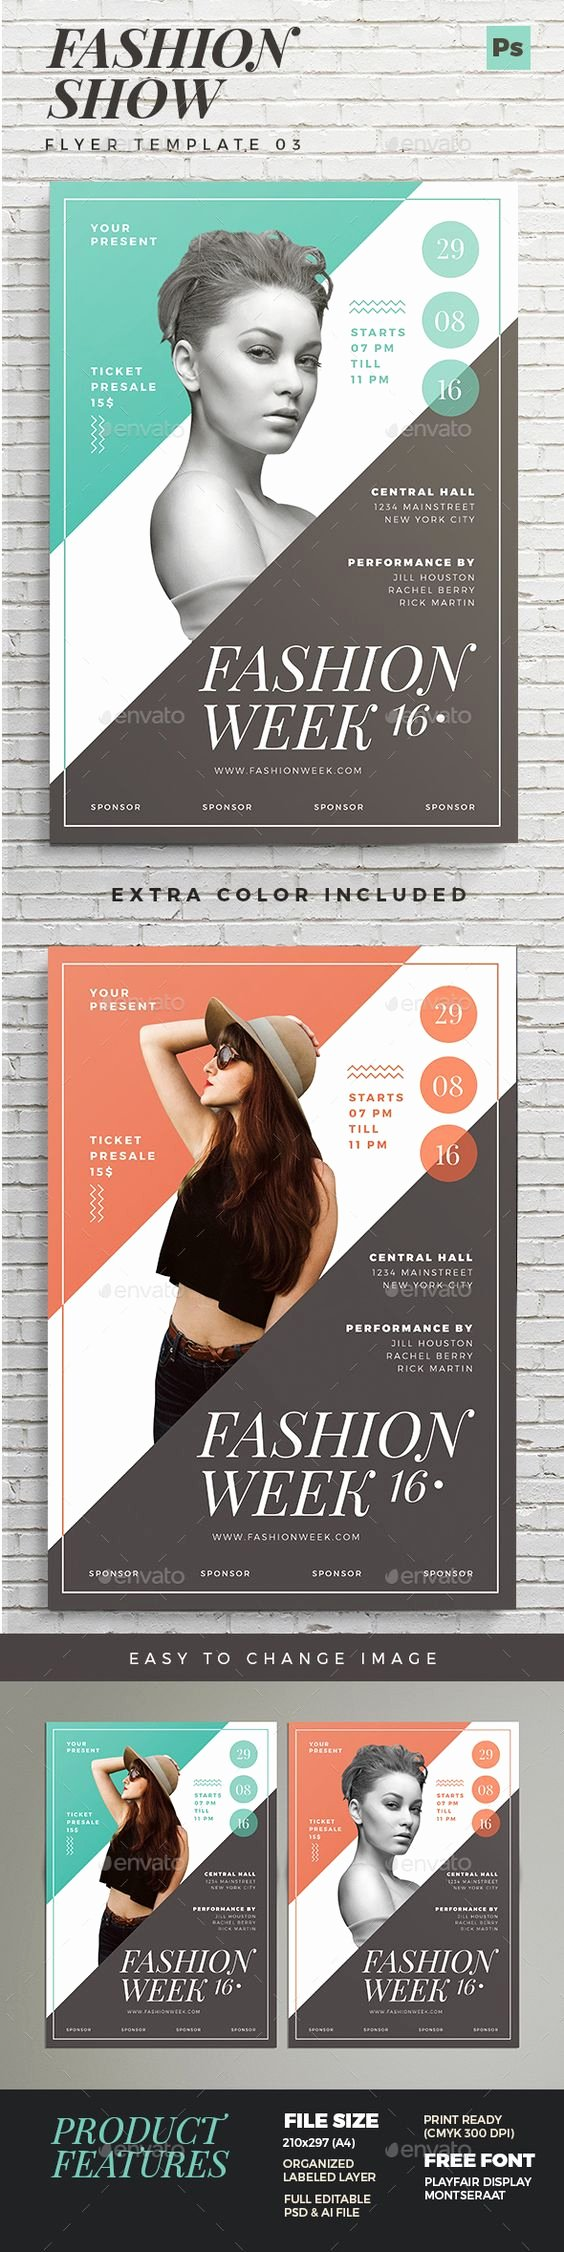 Fashion Show Flyer Template Beautiful Fashion Show Flyer 03